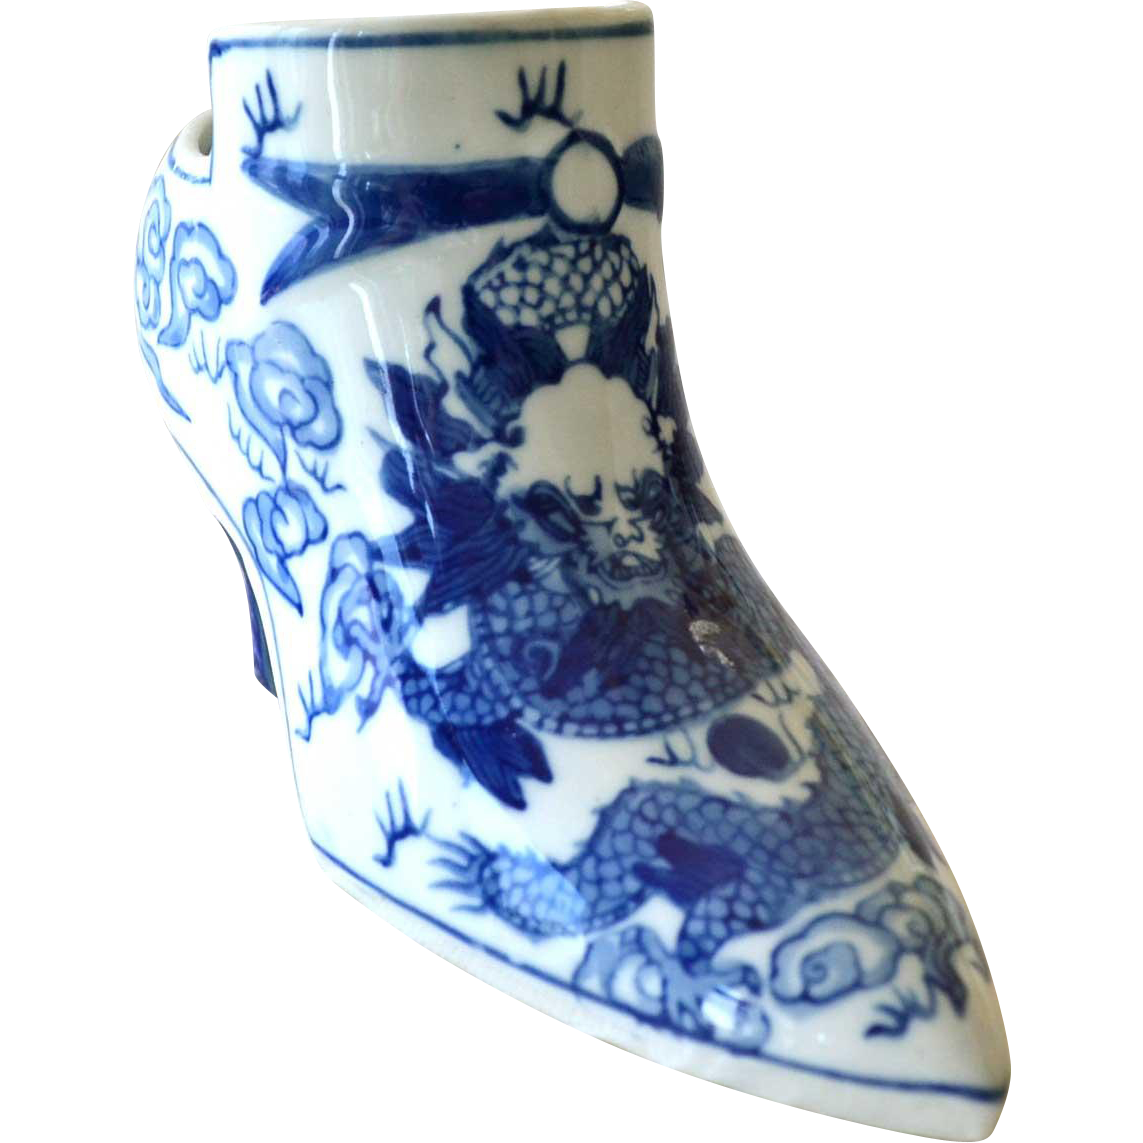 Chinese Shoe Porcelain with Dragon or Serpent vintage